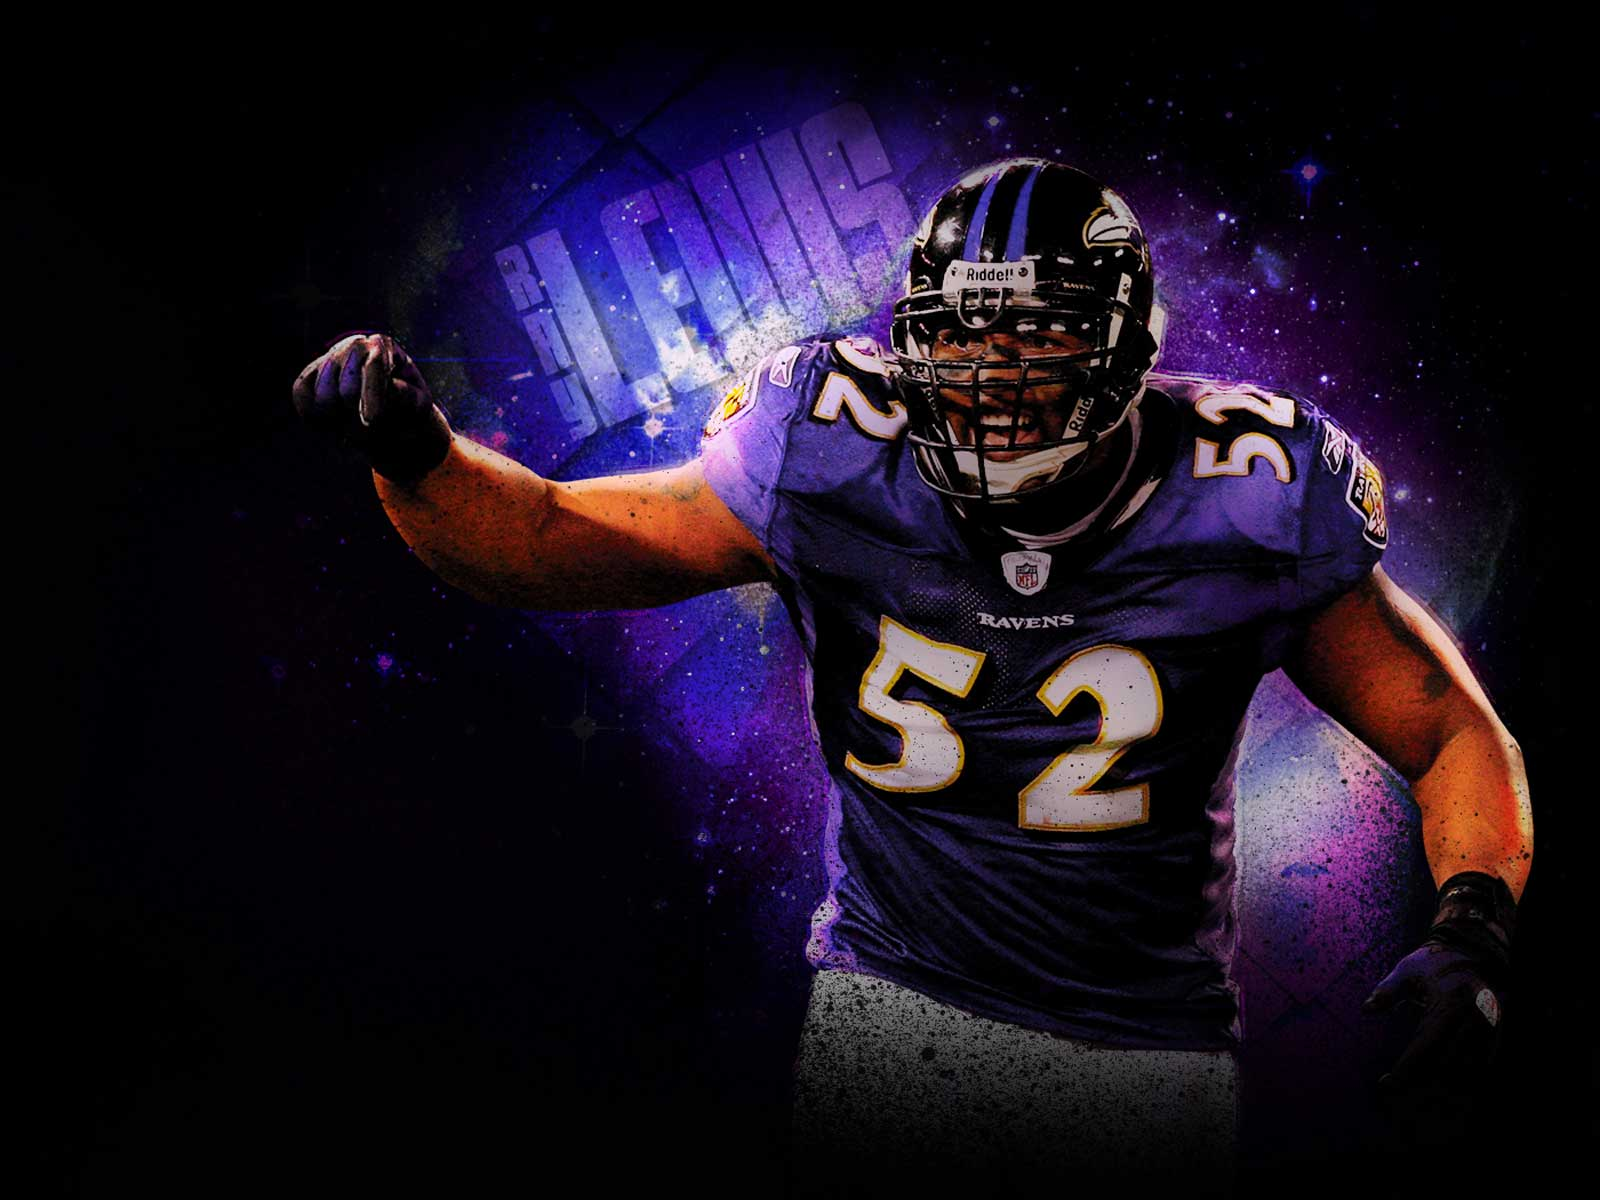 45 Nfl Football Players Wallpaper On Wallpapersafari: NFL Football Team Wallpapers